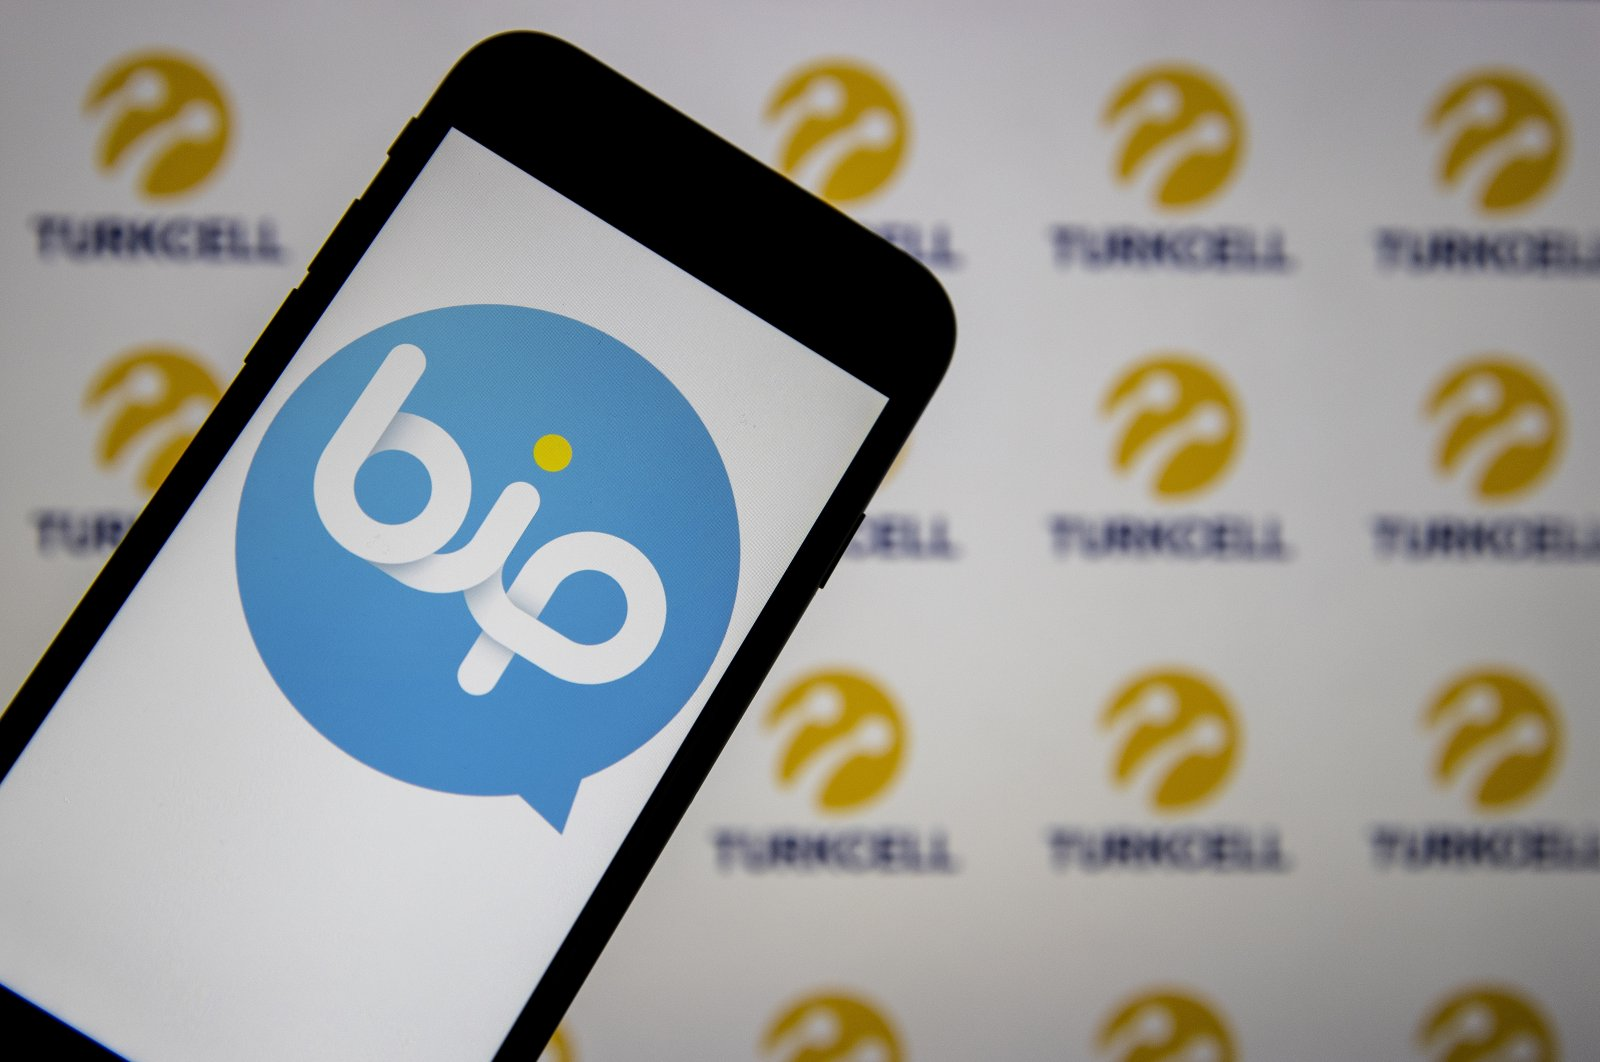 A logo of the Turkish messaging app BiP is seen on a phone screen in this illustration photo, Jan. 16, 2021. (AA Photo)